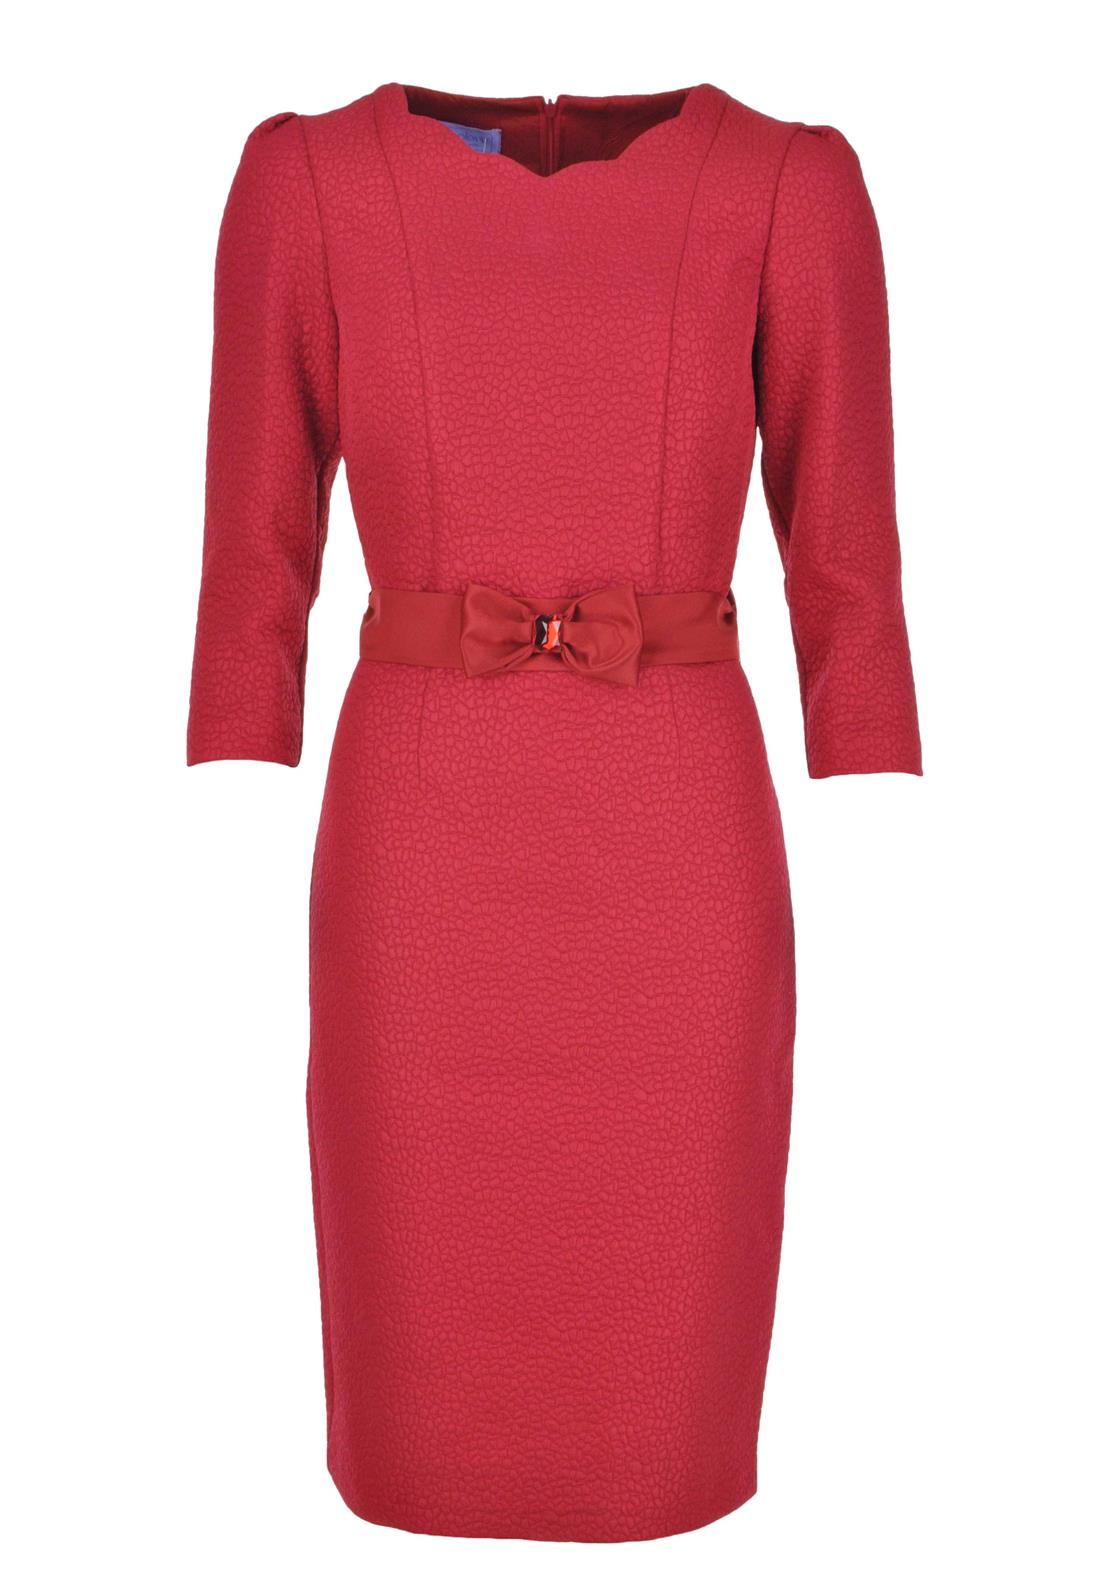 Anoola Embossed Dress with Embellished Belt, Red